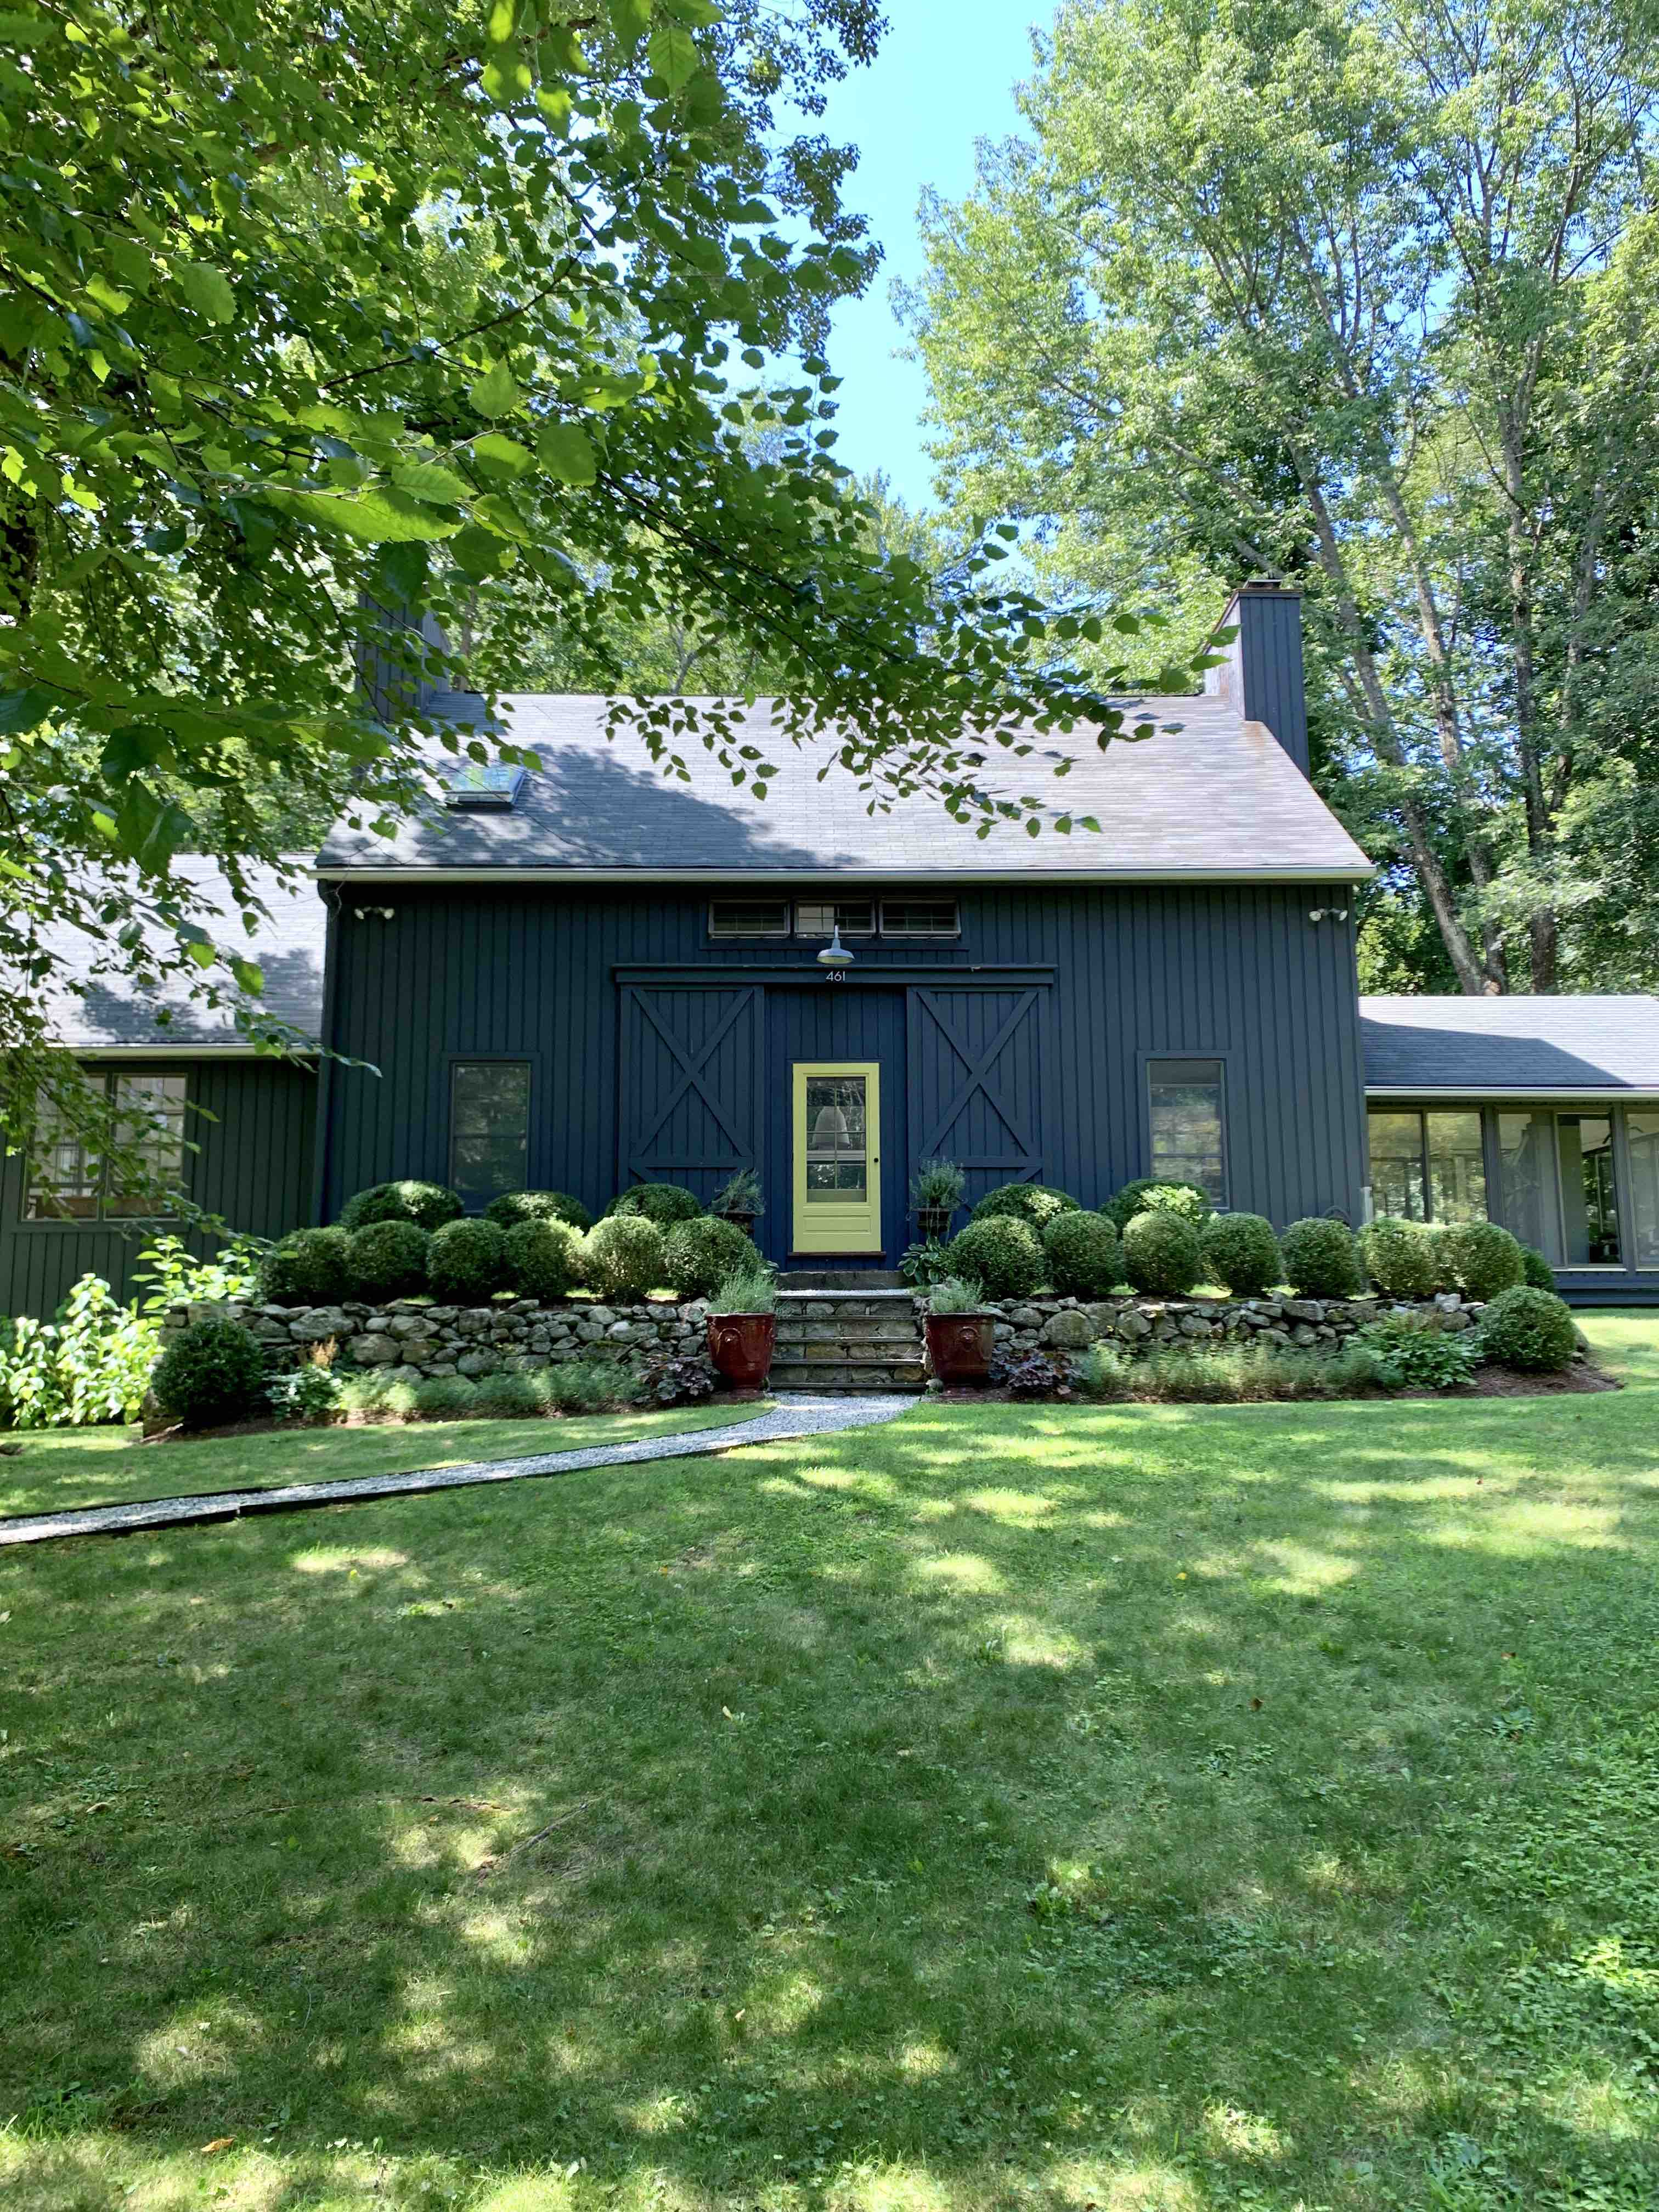 Quintessential Modern Farmhouse In Connecticut Houses For Rent In Redding Connecticut United States